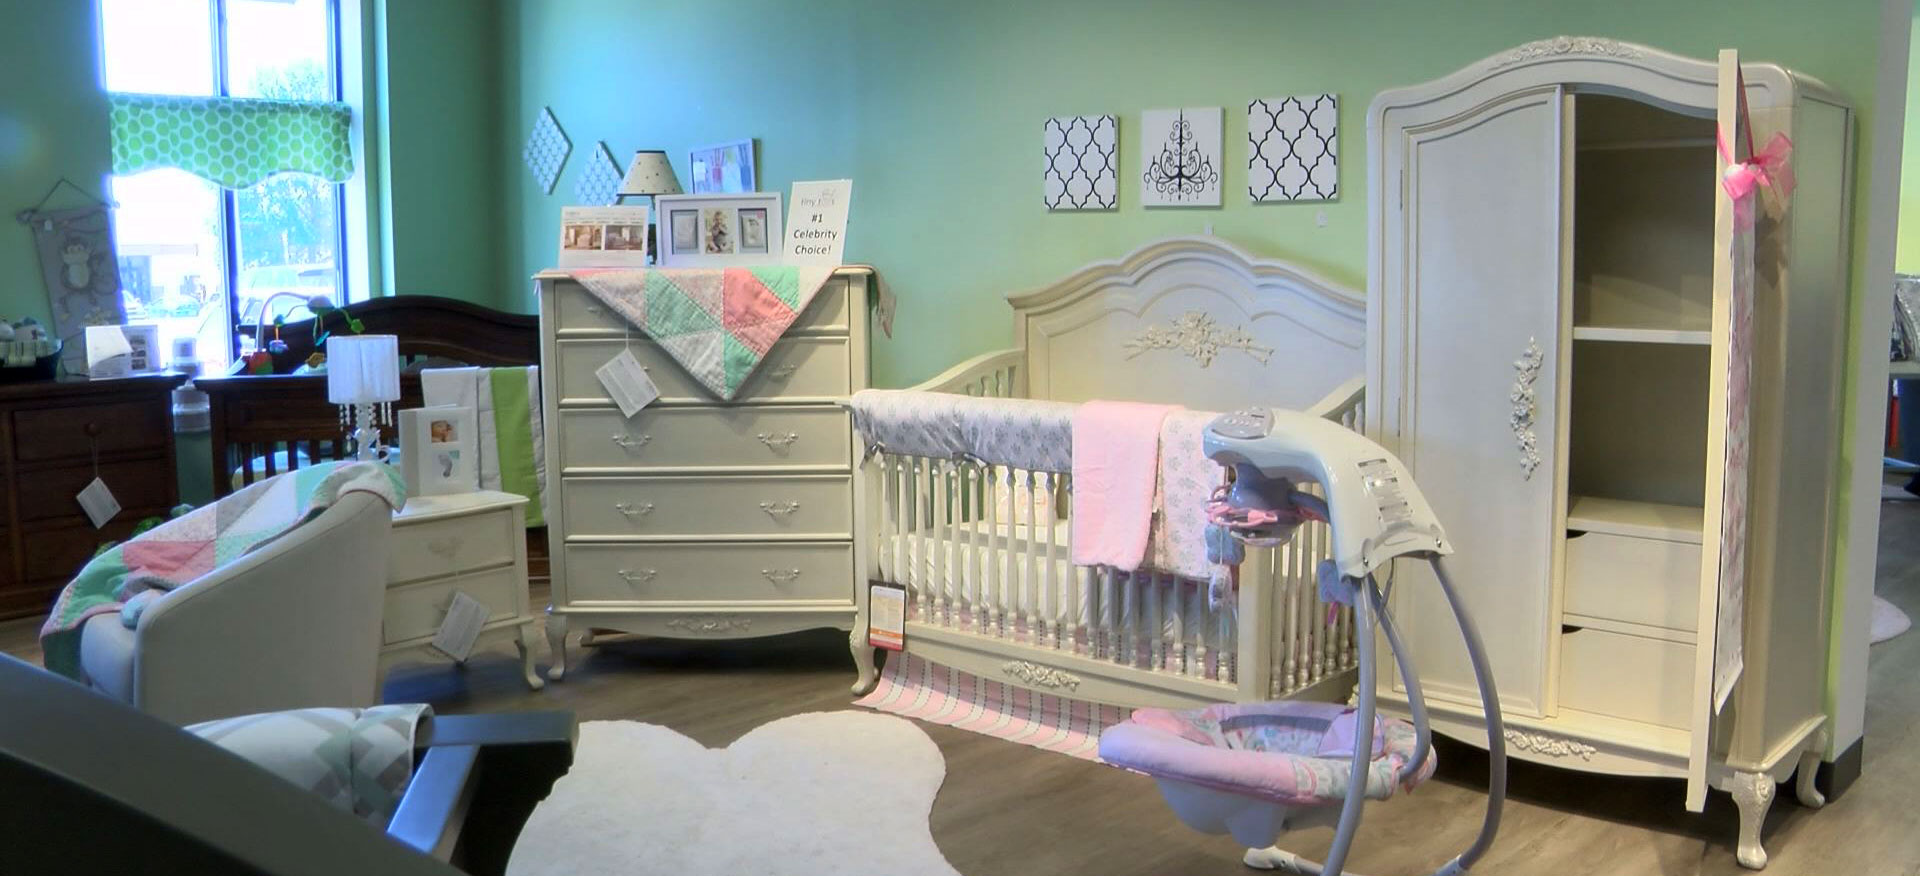 upscale baby furniture. upscale baby furniture